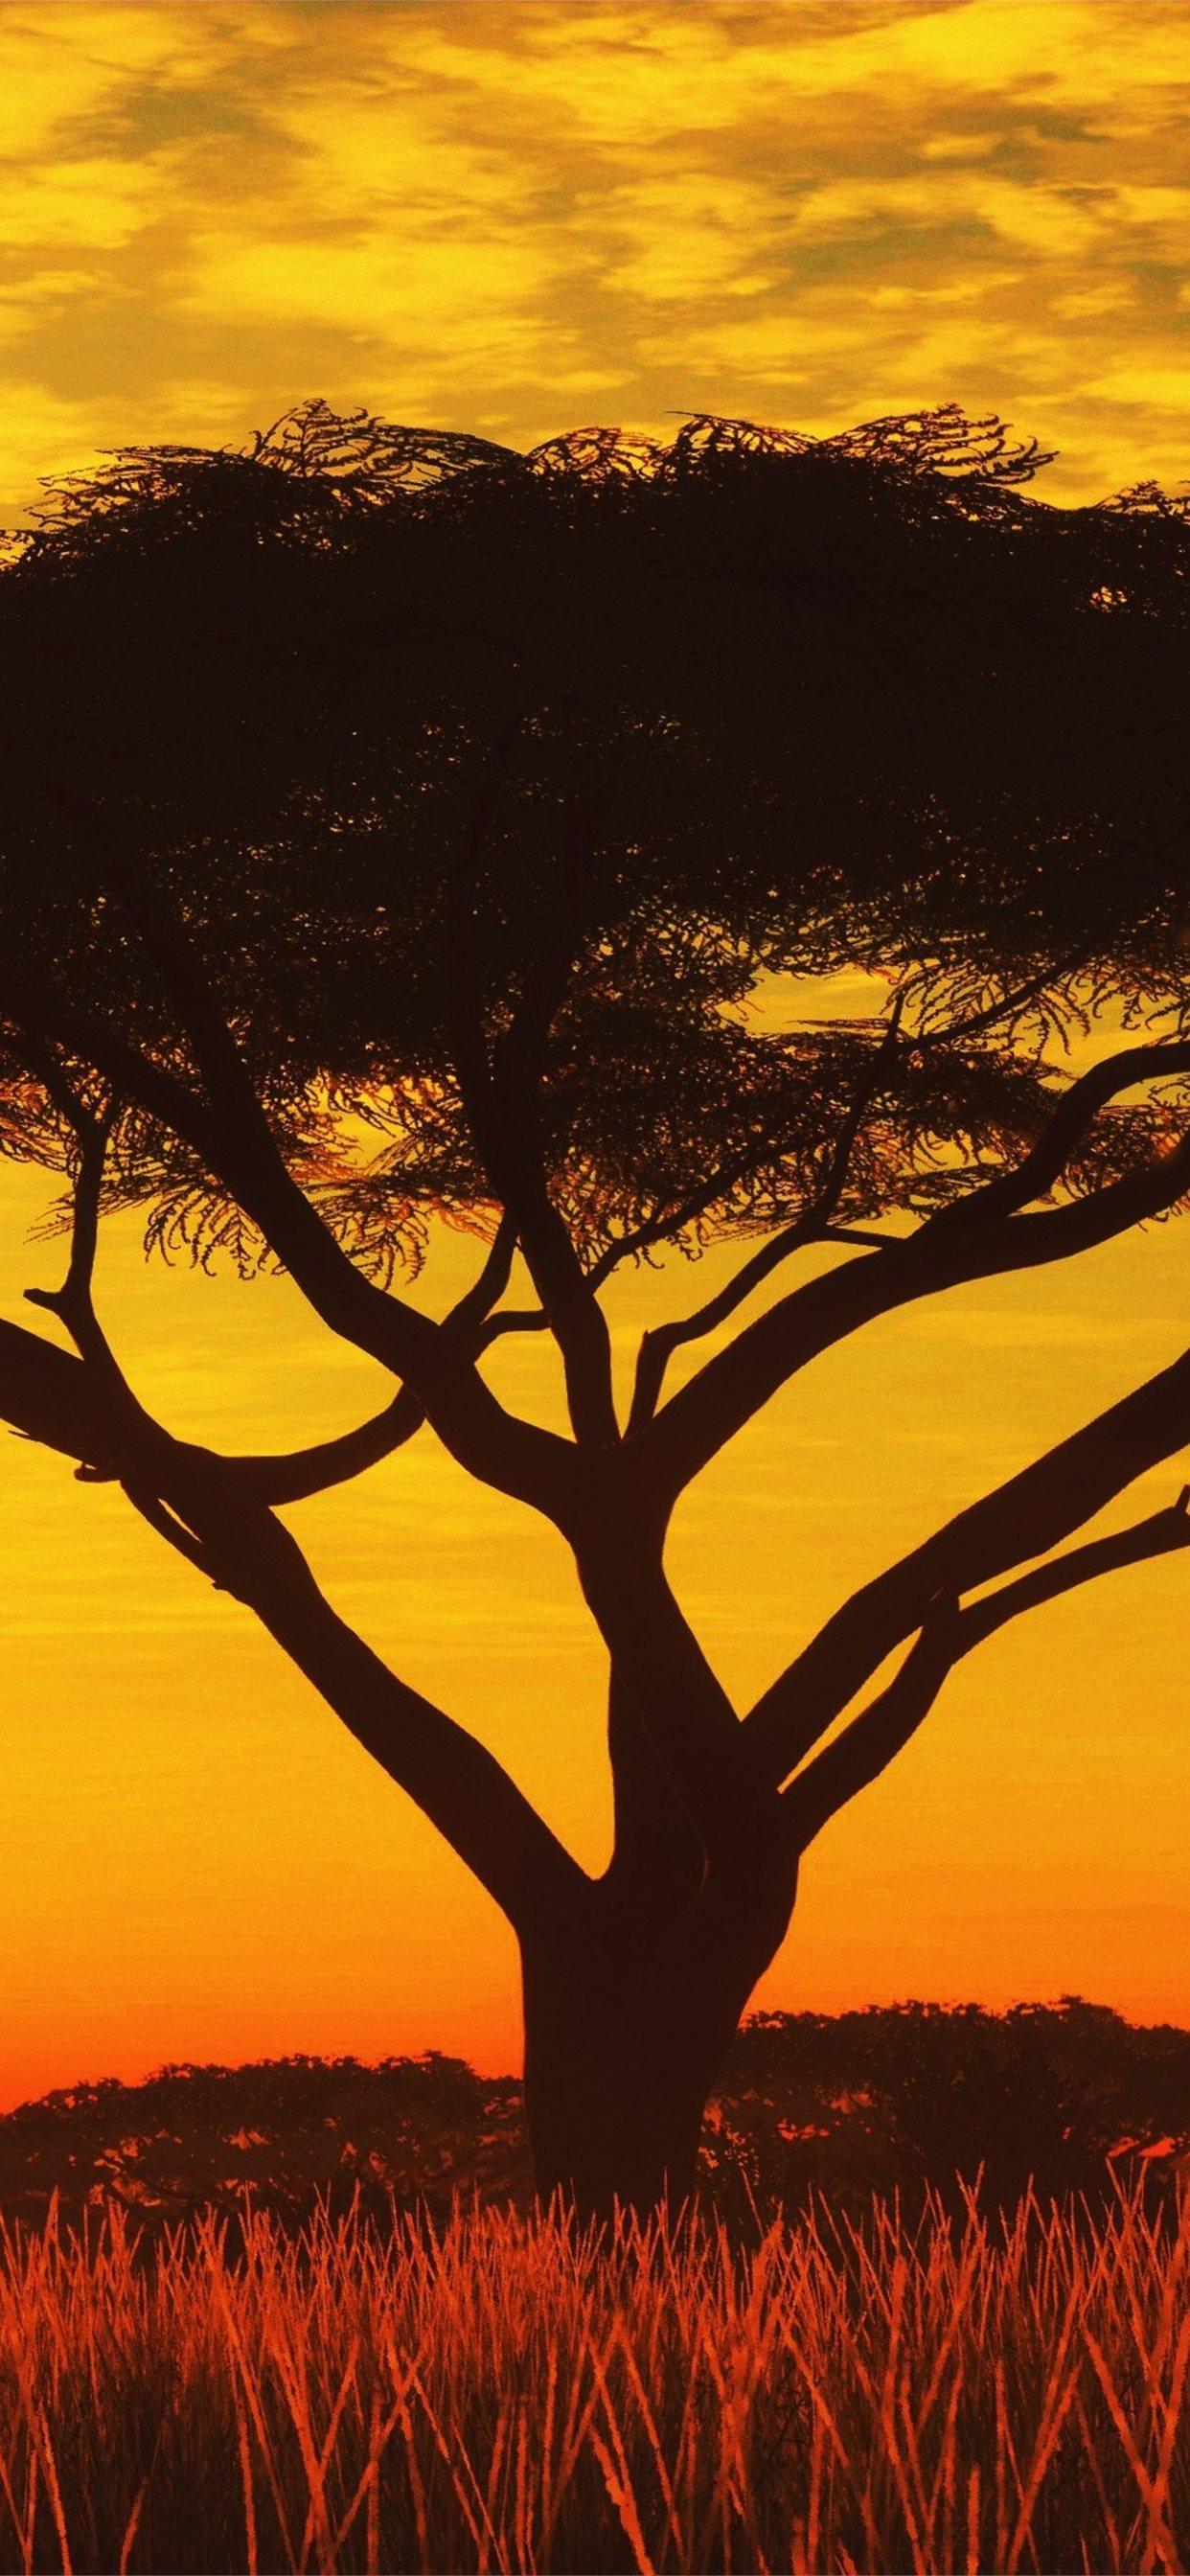 Serengeti Sunset 4k Samsung Galaxy Note 9 8 S9 S8 Iphone X Wallpapers Free Download